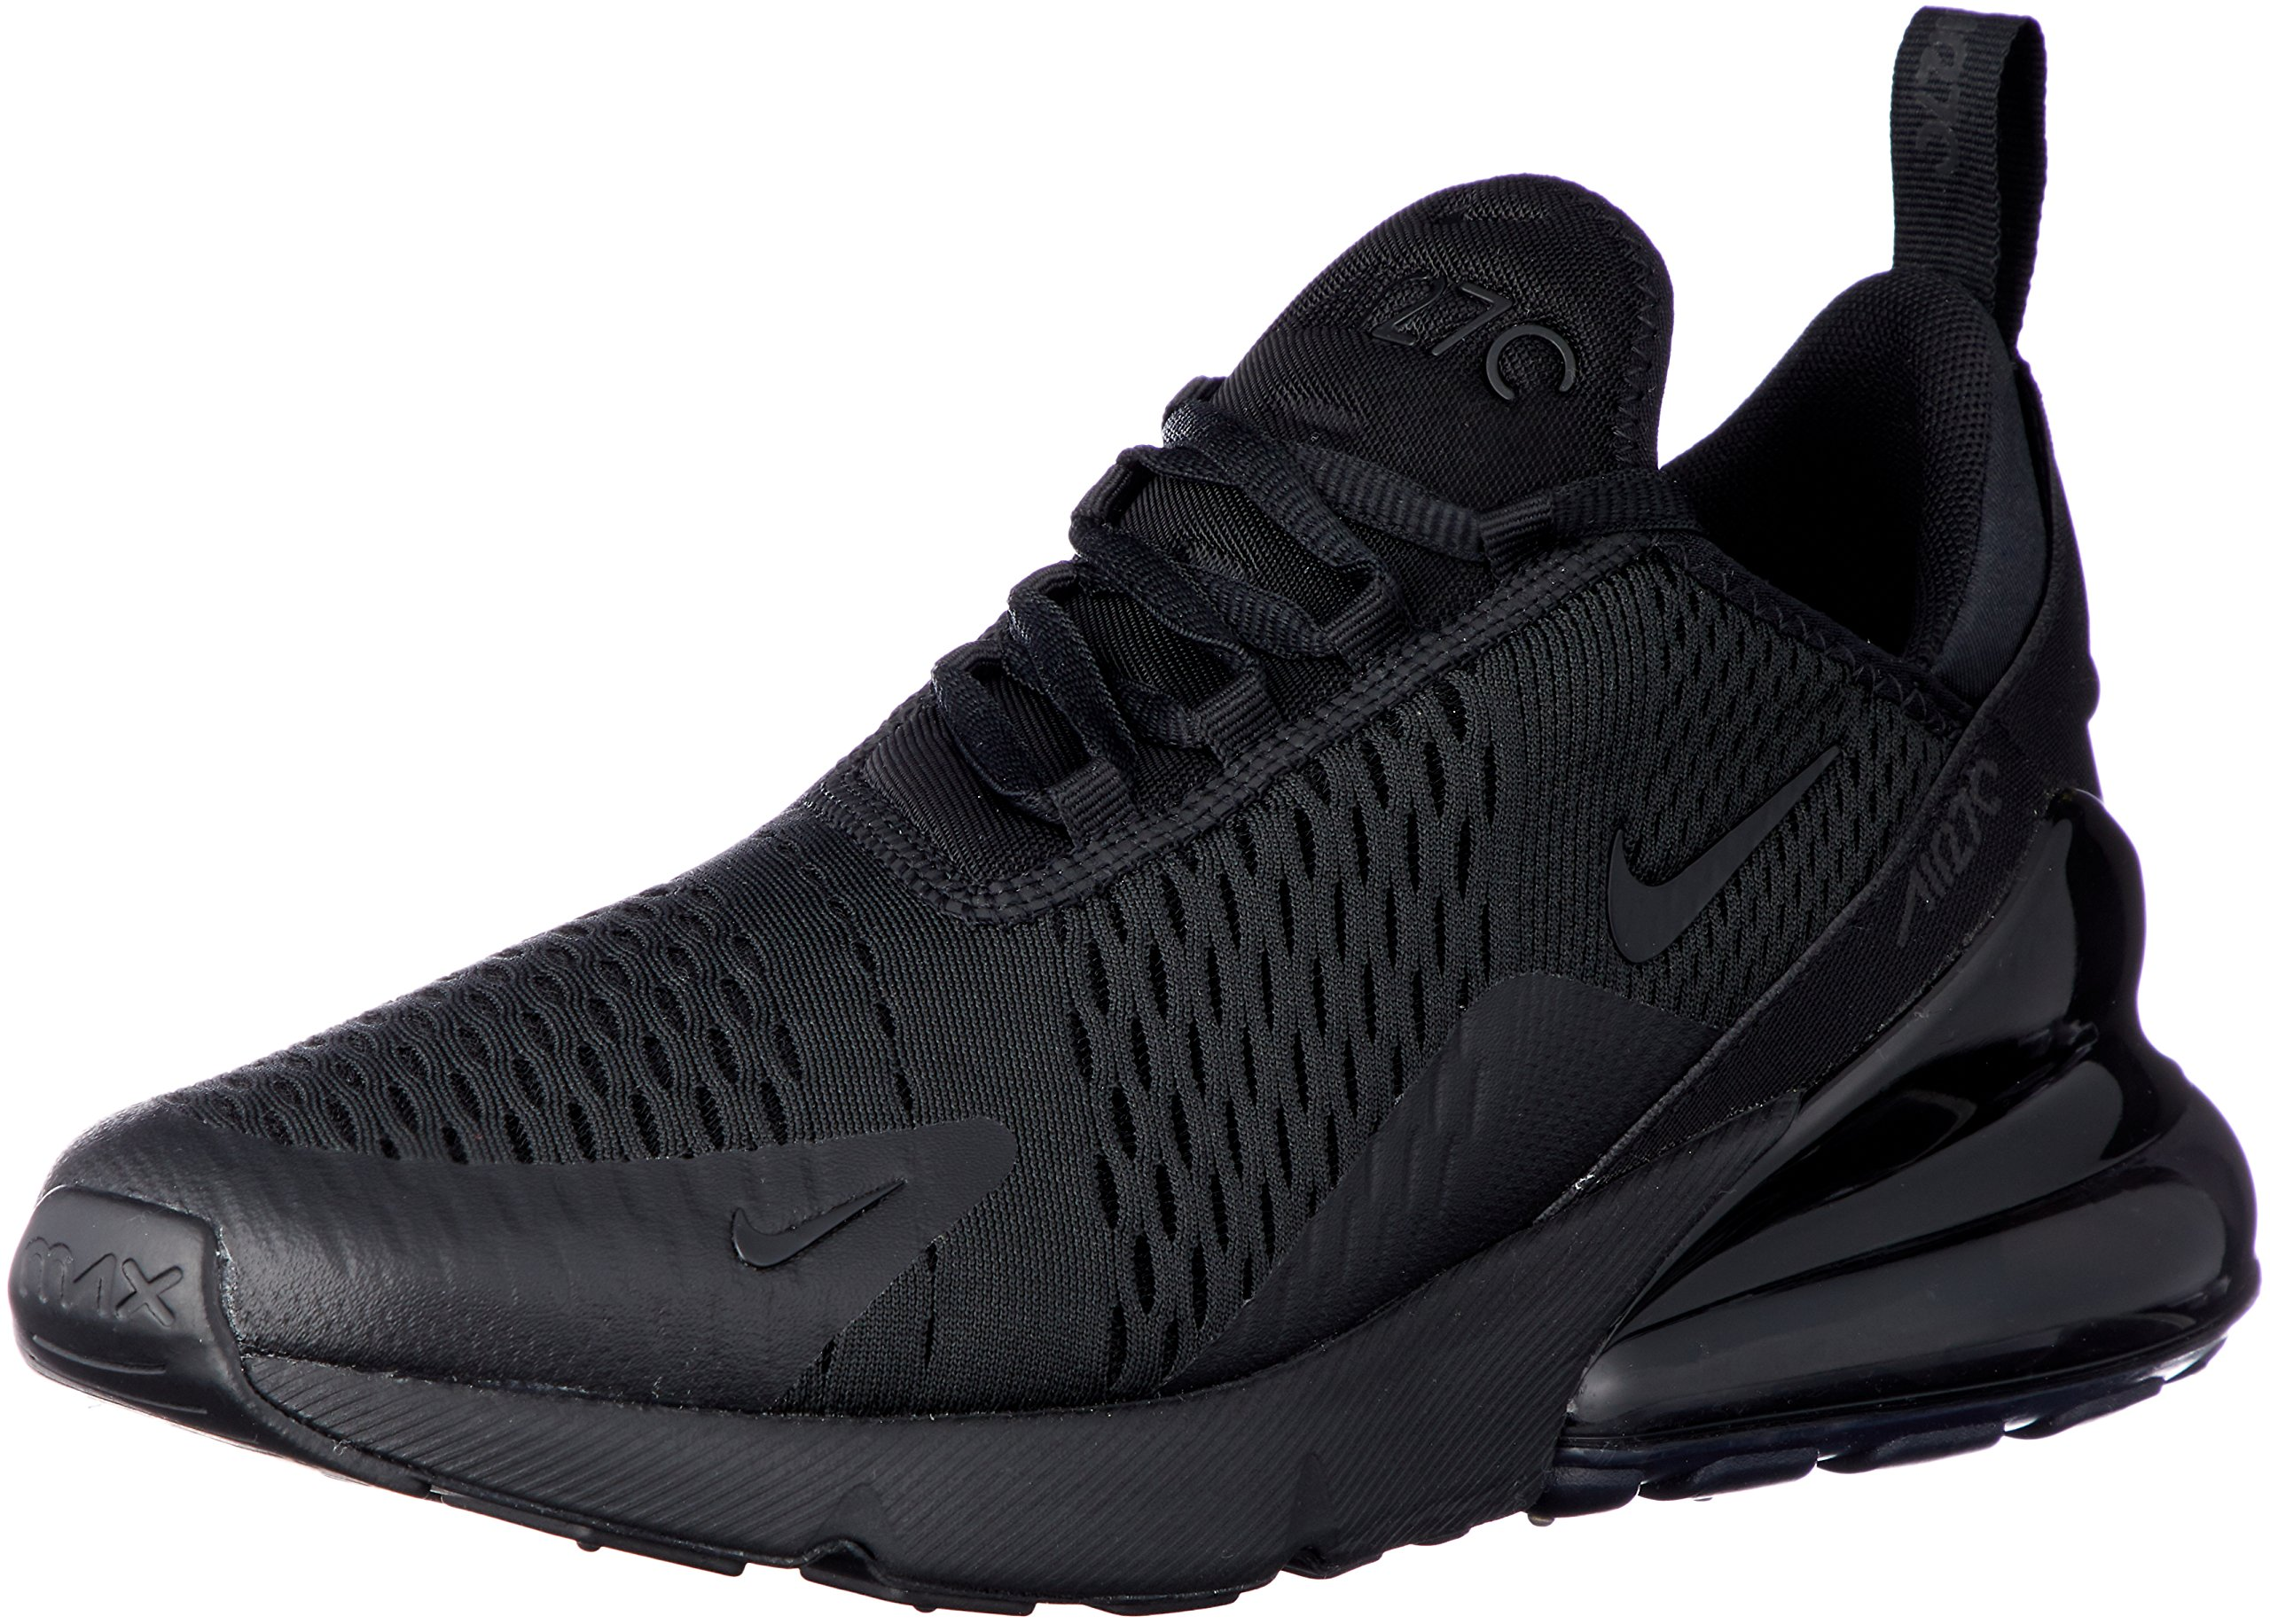 Nike Air Max 270 Men's Running Shoes BlackBlack Black AH8050 005 (8 D(M) US)